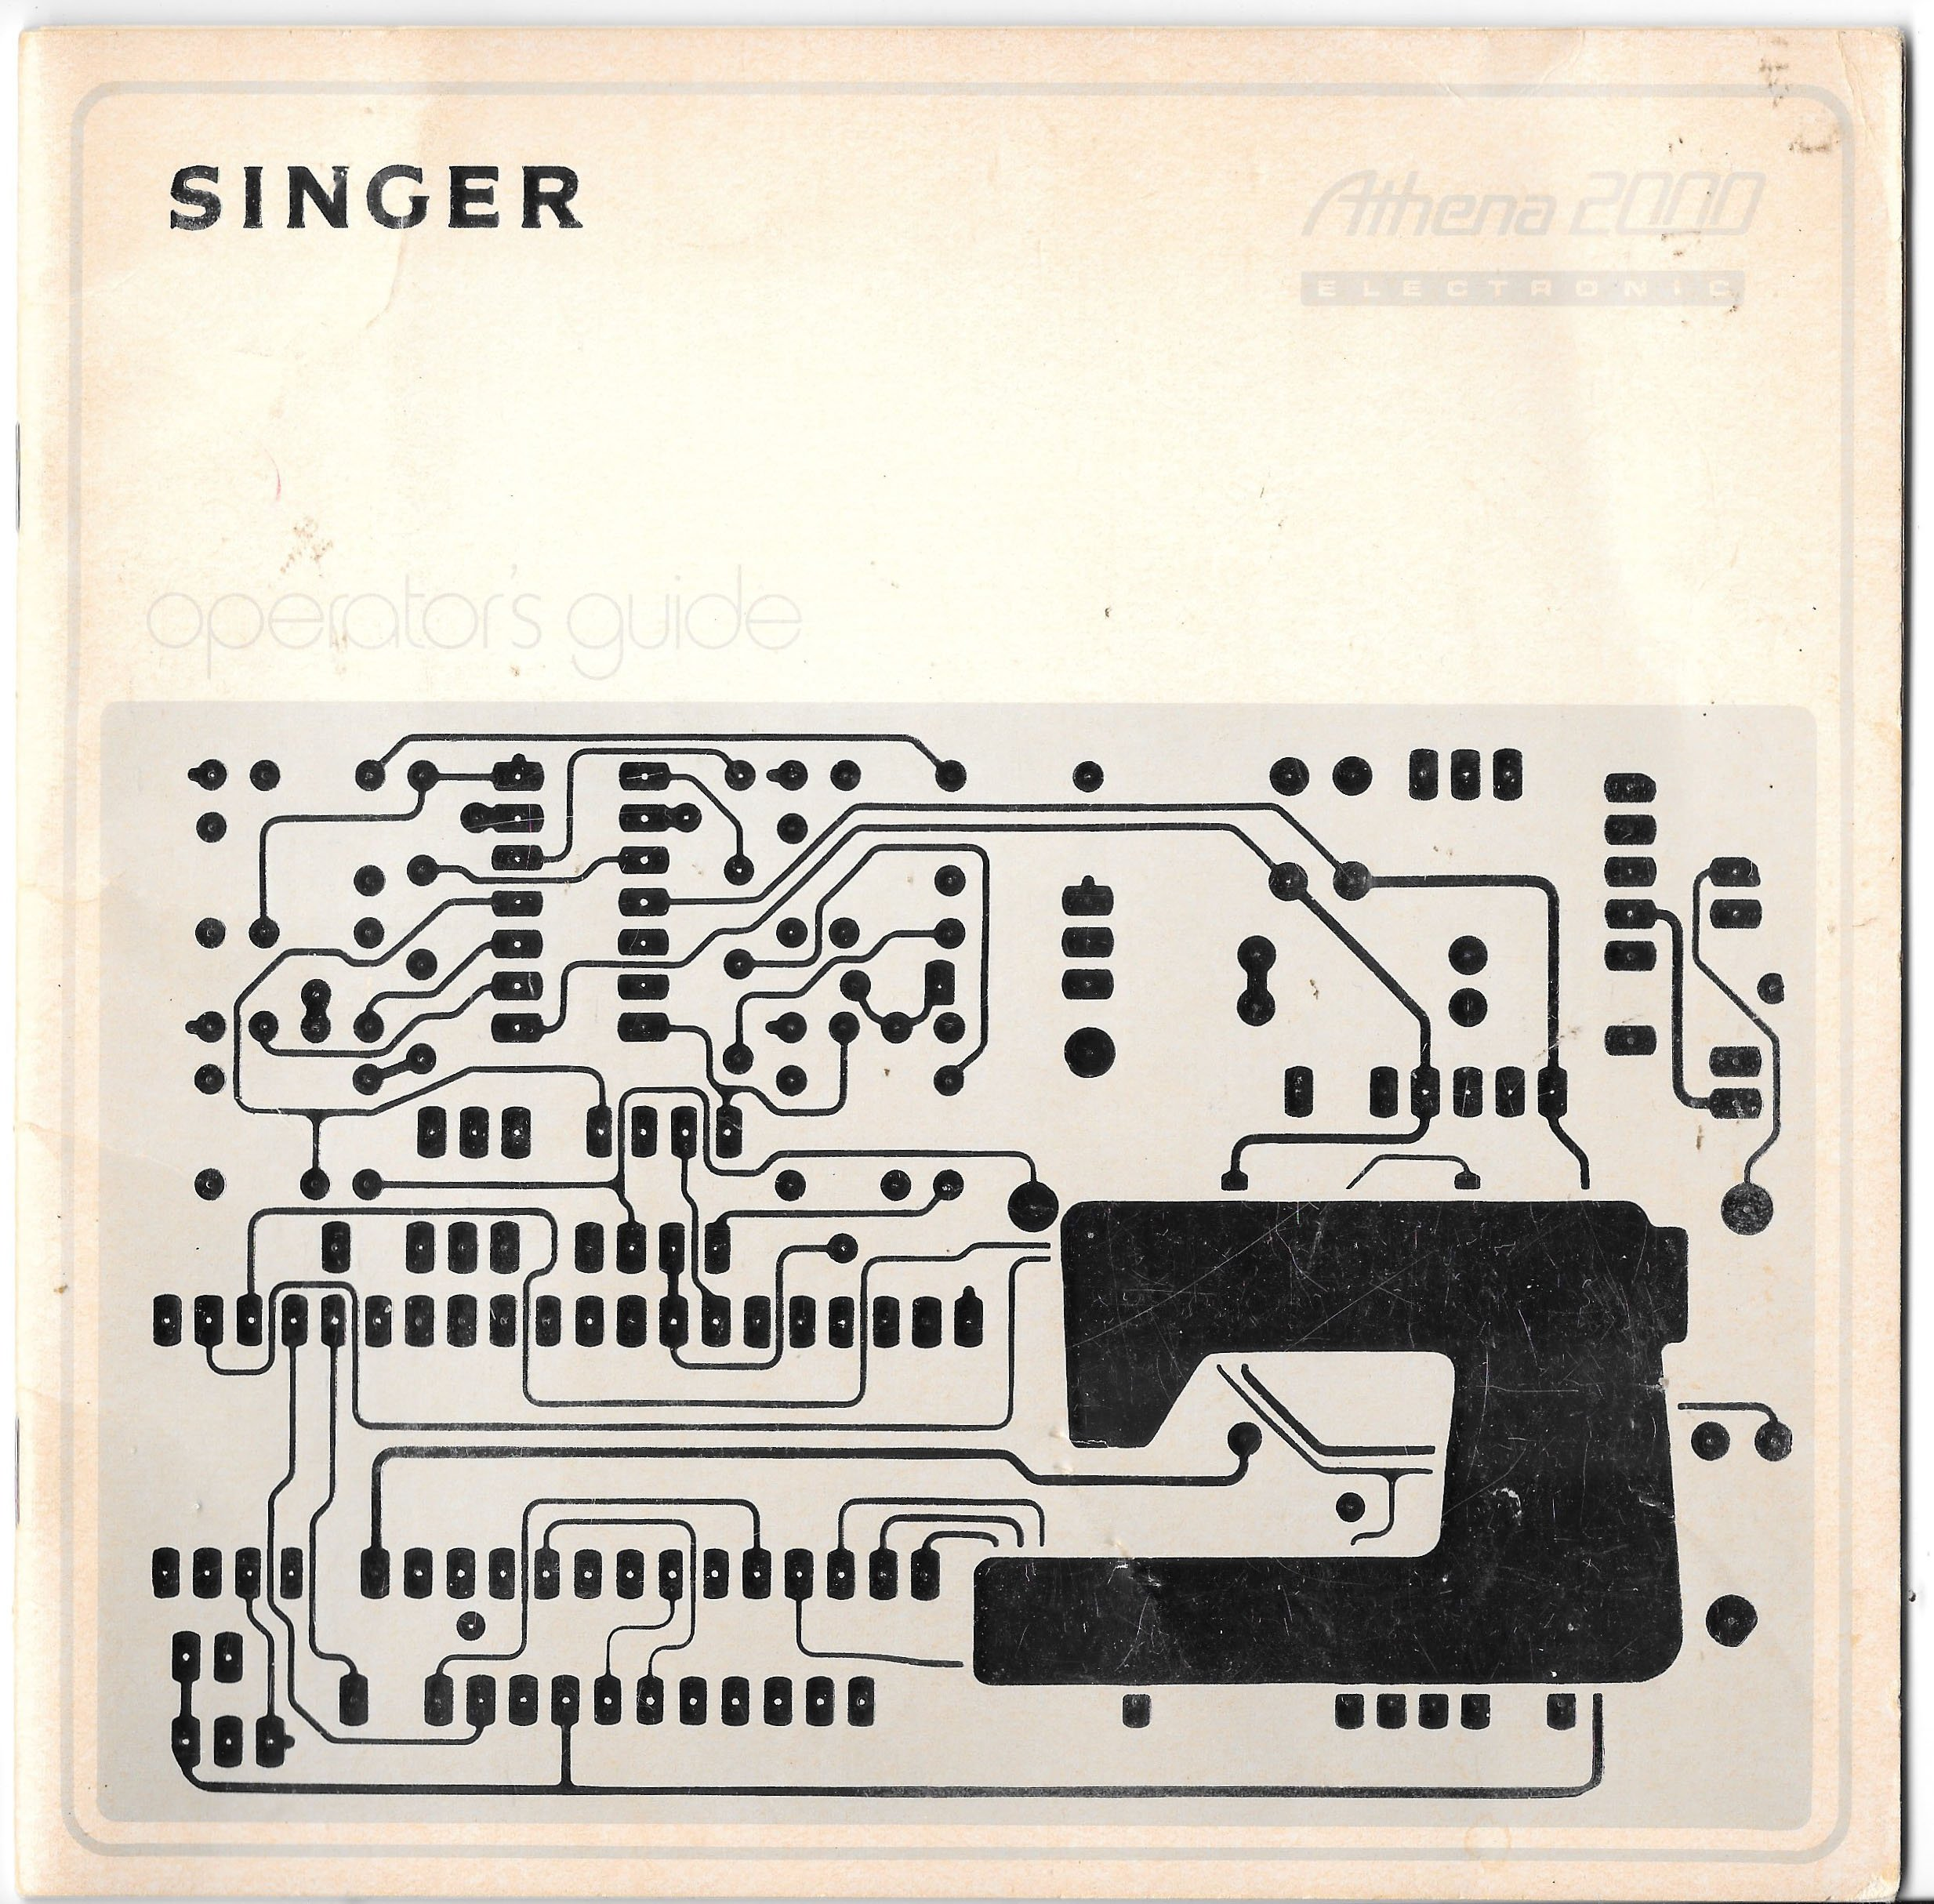 Singer Athena 2000 Electronic Operator's Guide: The Singer Company:  Amazon.com: Books